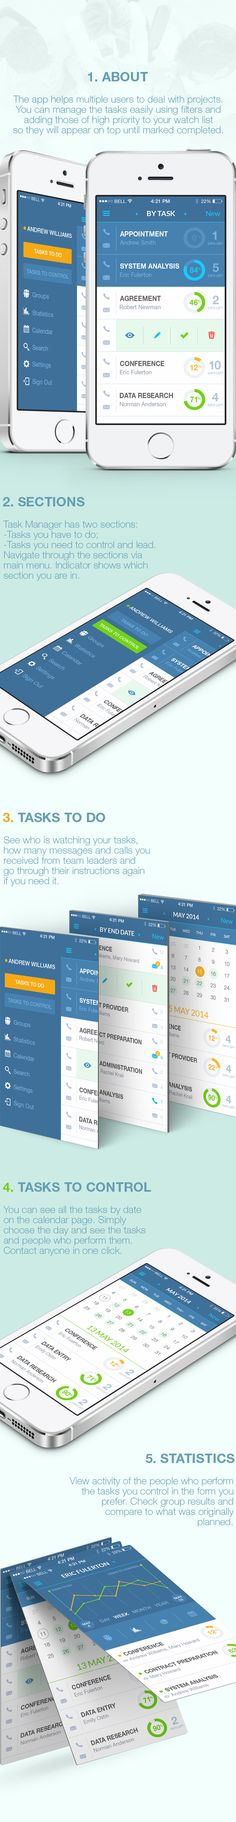 Task Manager App by Southwalk G, via Behance. Beautiful design.